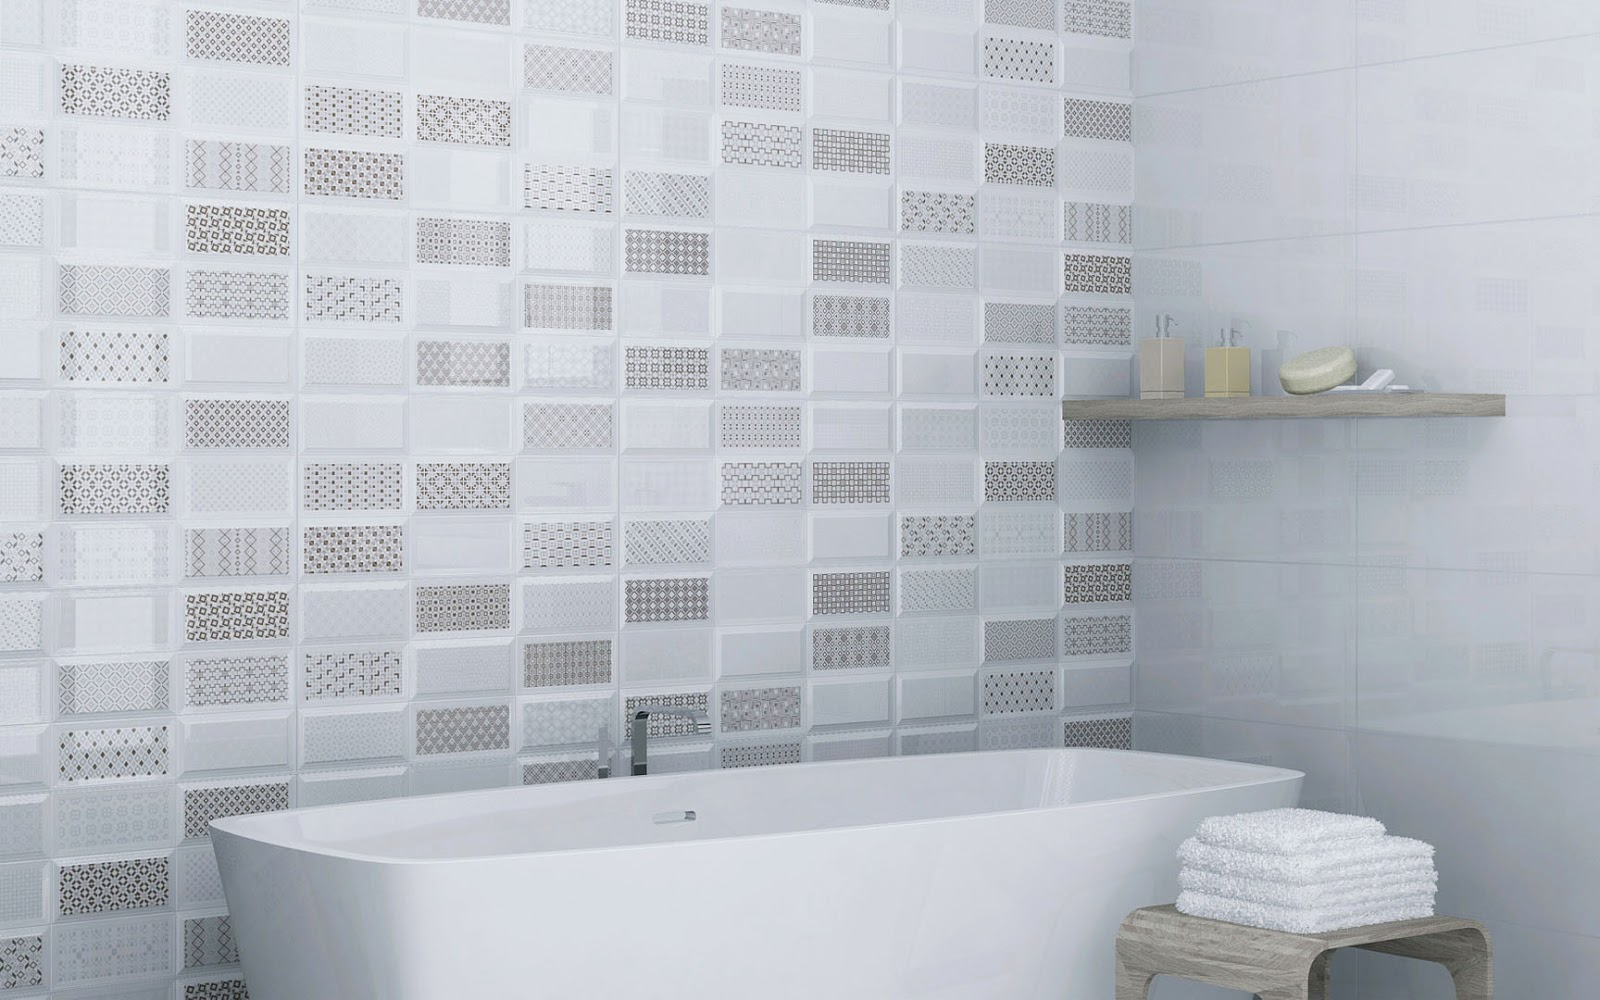 Sell Wall Tile Roman dSubway from Indonesia by Pusat